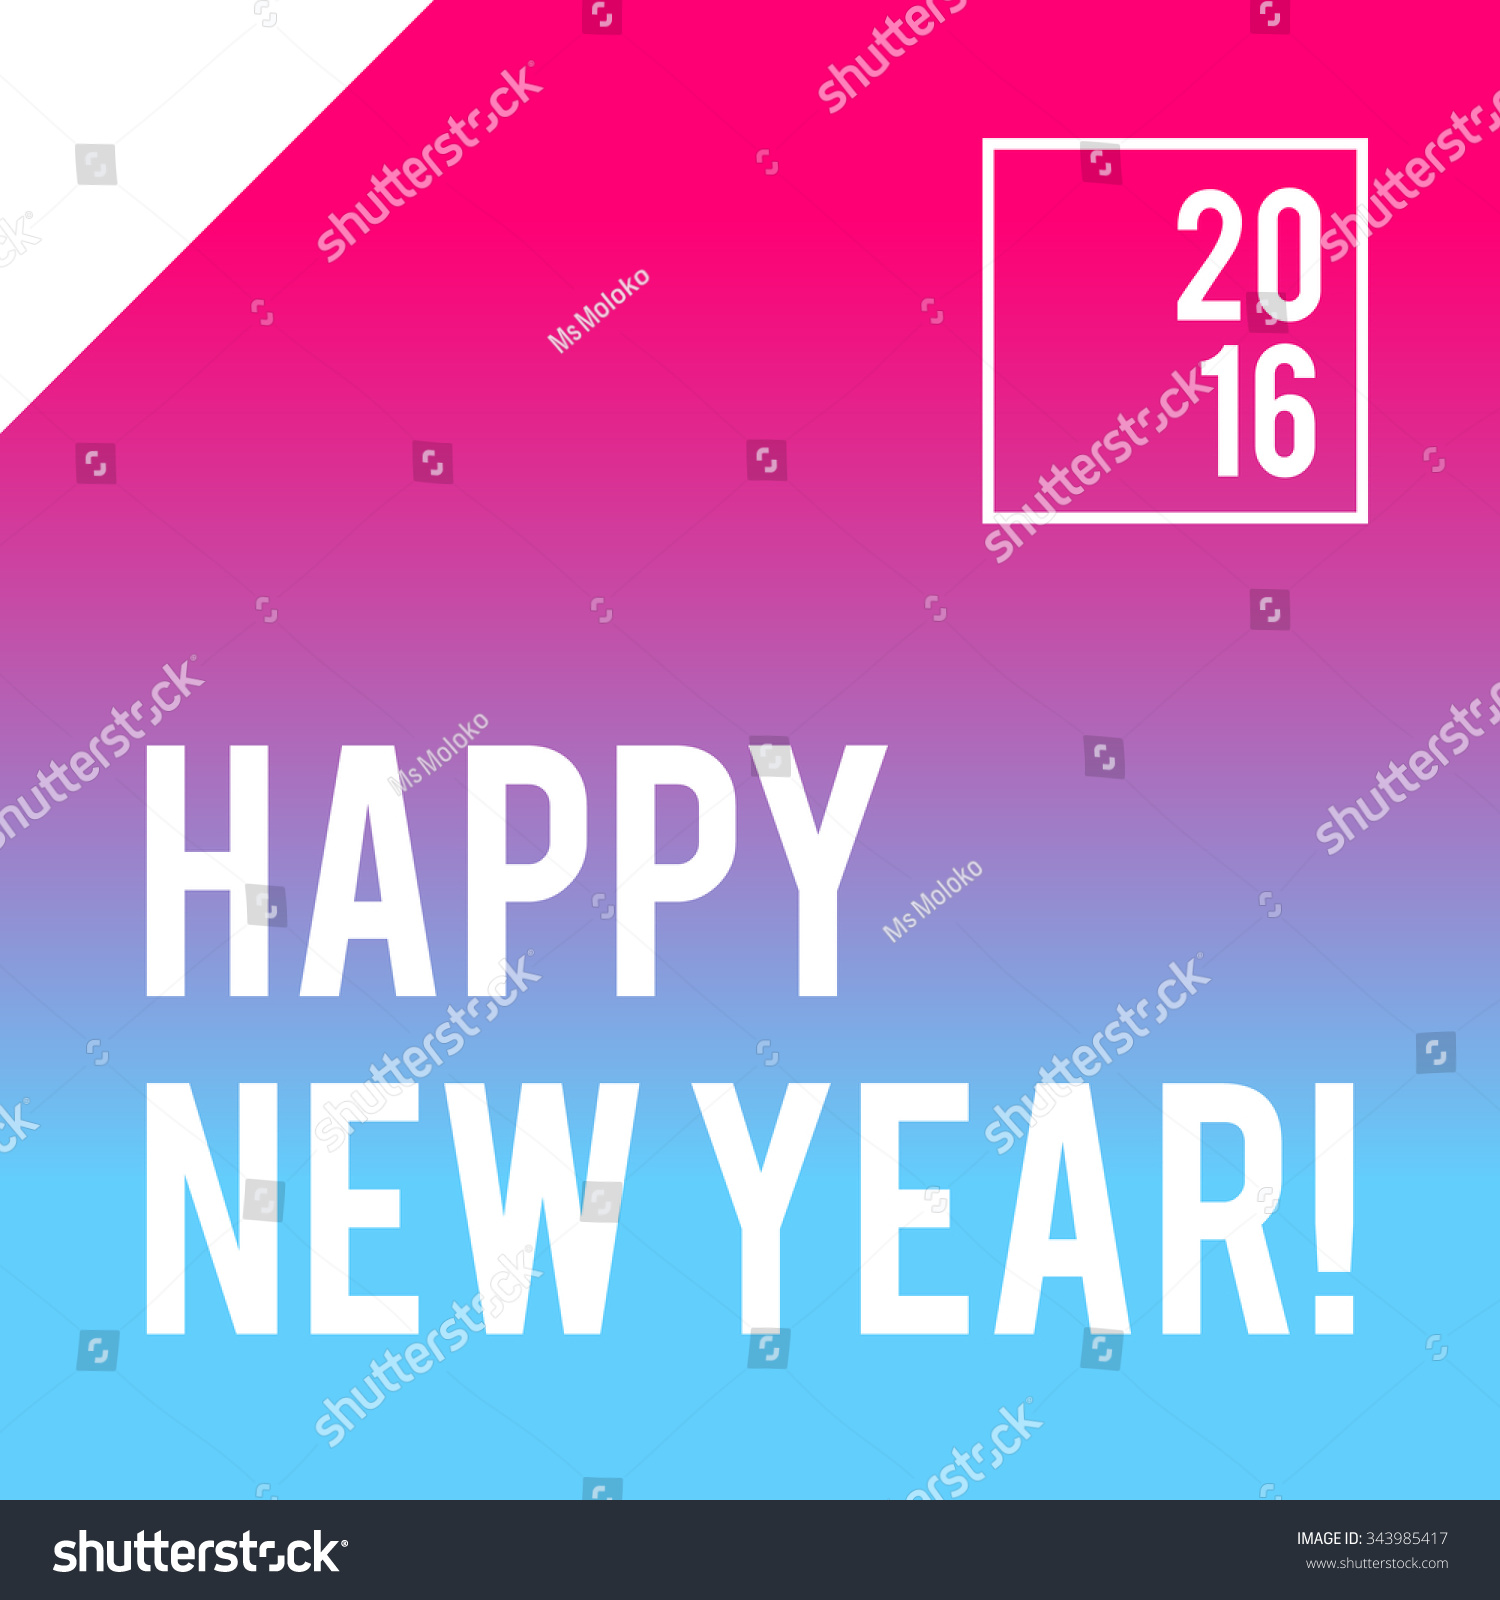 Neon bright new year design banner stock vector 343985417 shutterstock neon bright new year design for banner or party invitation vector illustration stopboris Choice Image